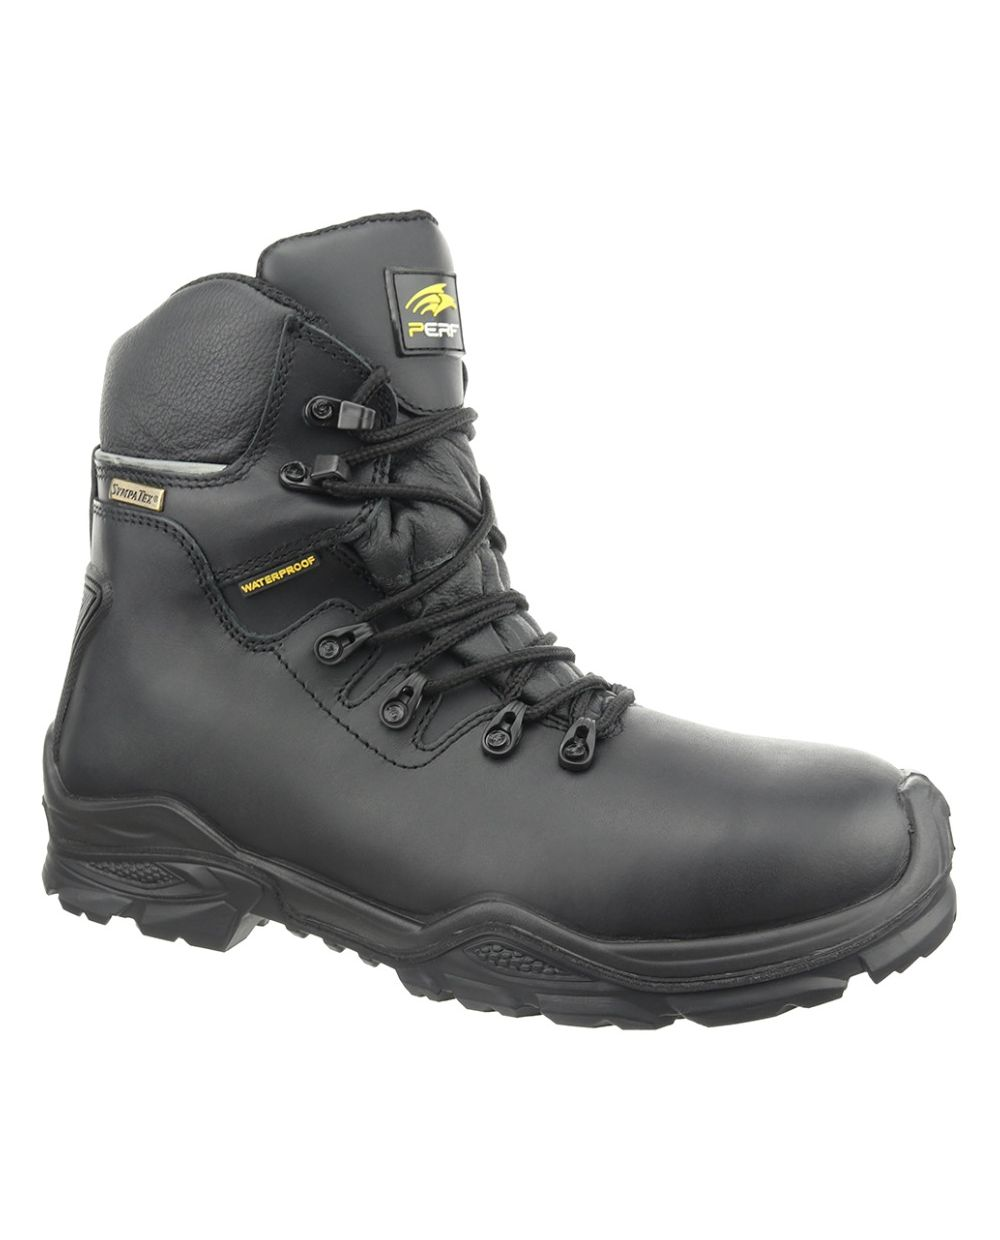 Railway Vibram H/D Waterproof Hiker